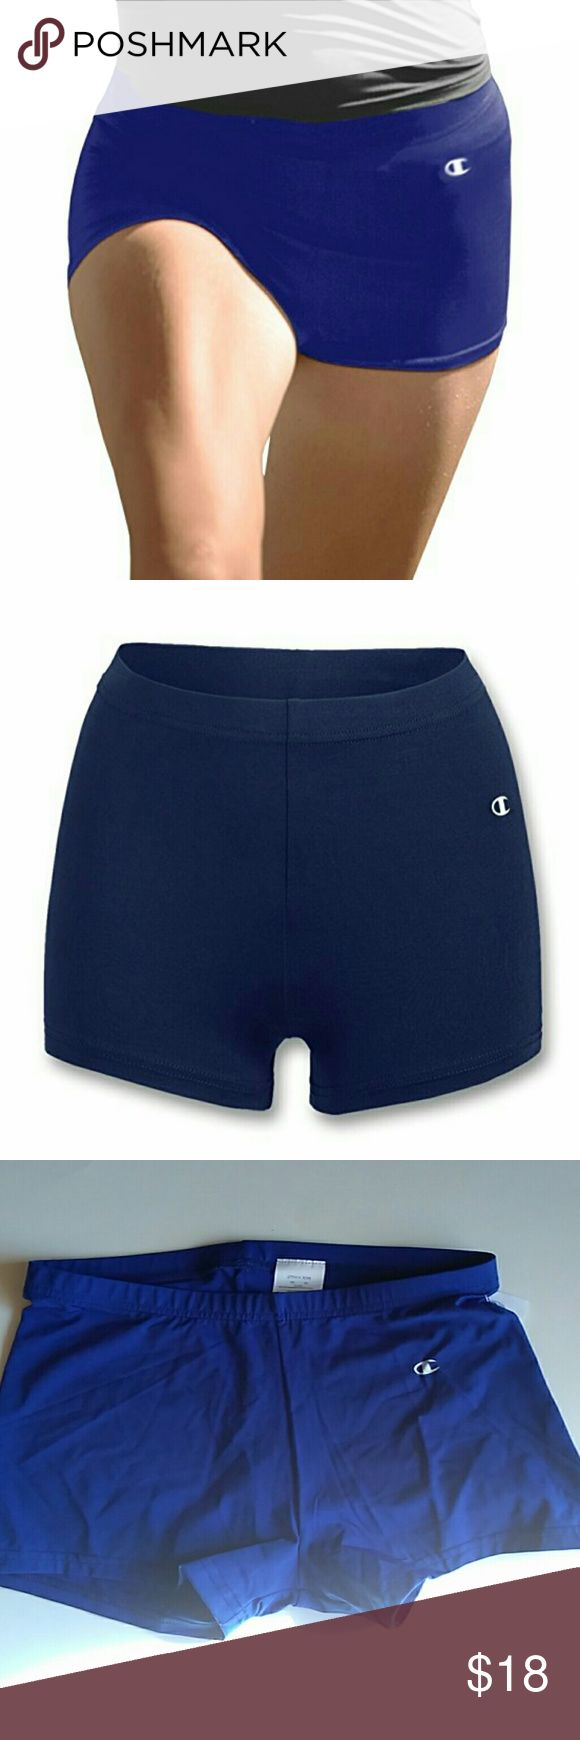 Champion Women's Performance Compression Briefs Keep your cool underneath it all. Try these Champion women's briefs, featuring compression plus moisture control. Double Dry. Royal Blue 89% Nylon, 11% Spandex Champion Shorts